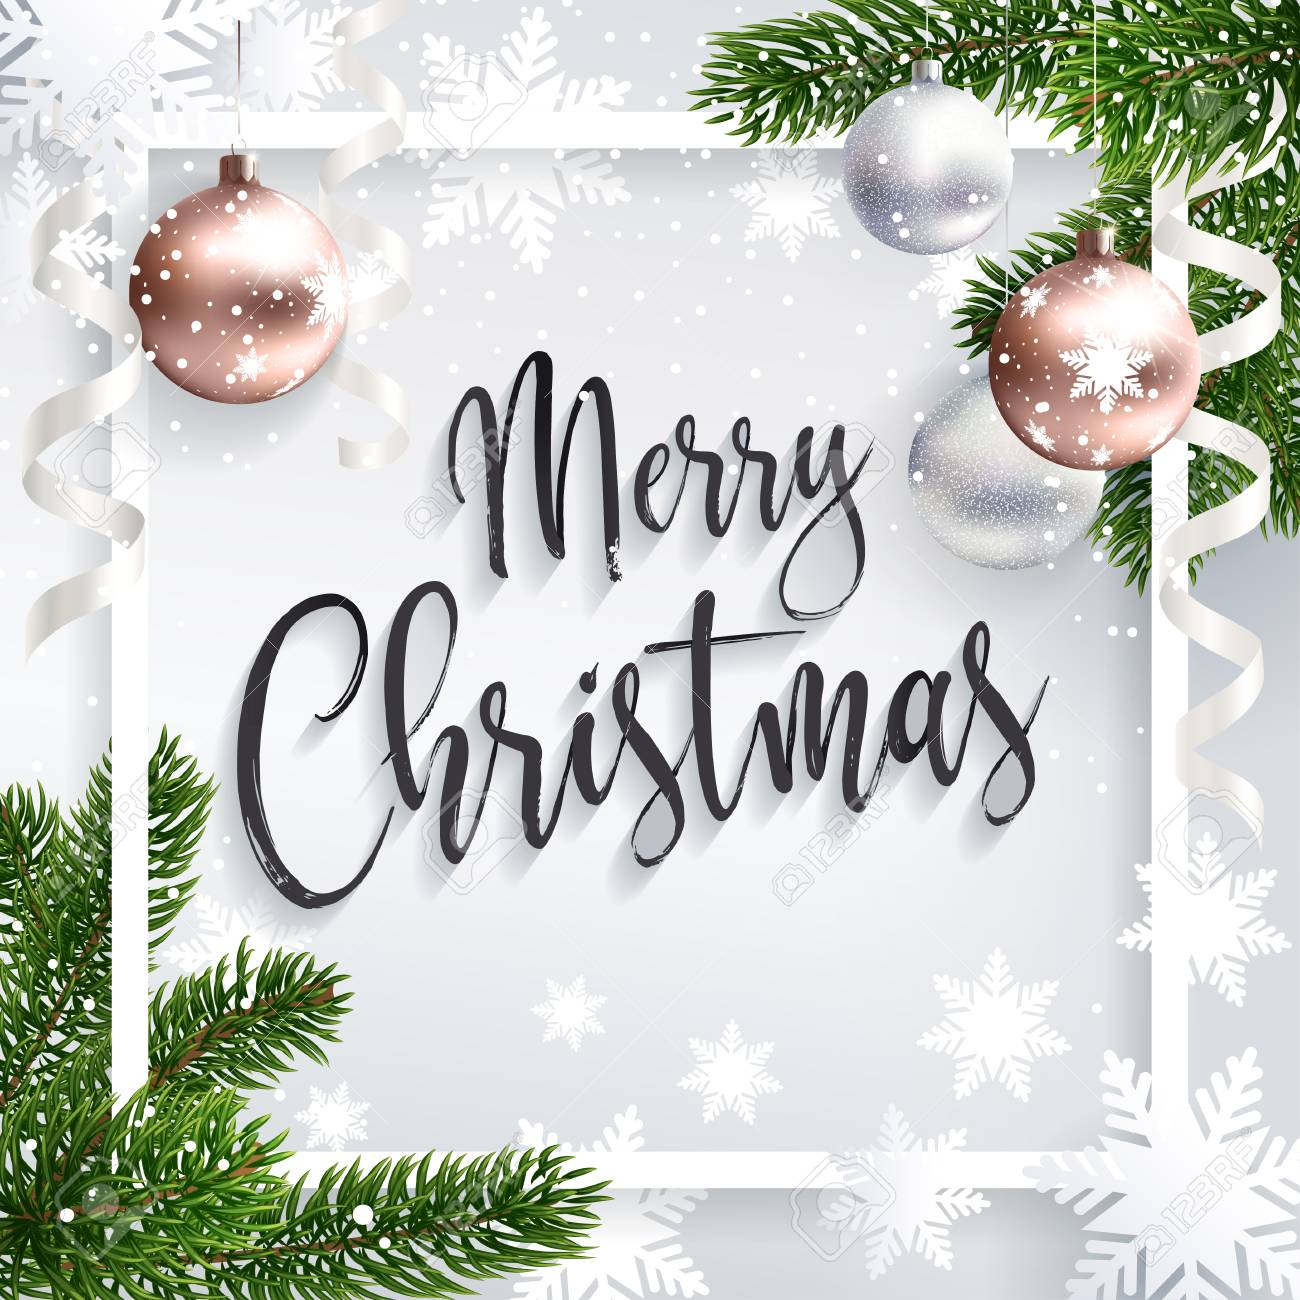 Merry Christmas Inscription Greeting White Festive Background Royalty Free Cliparts Vectors And Stock Illustration Image 84792397